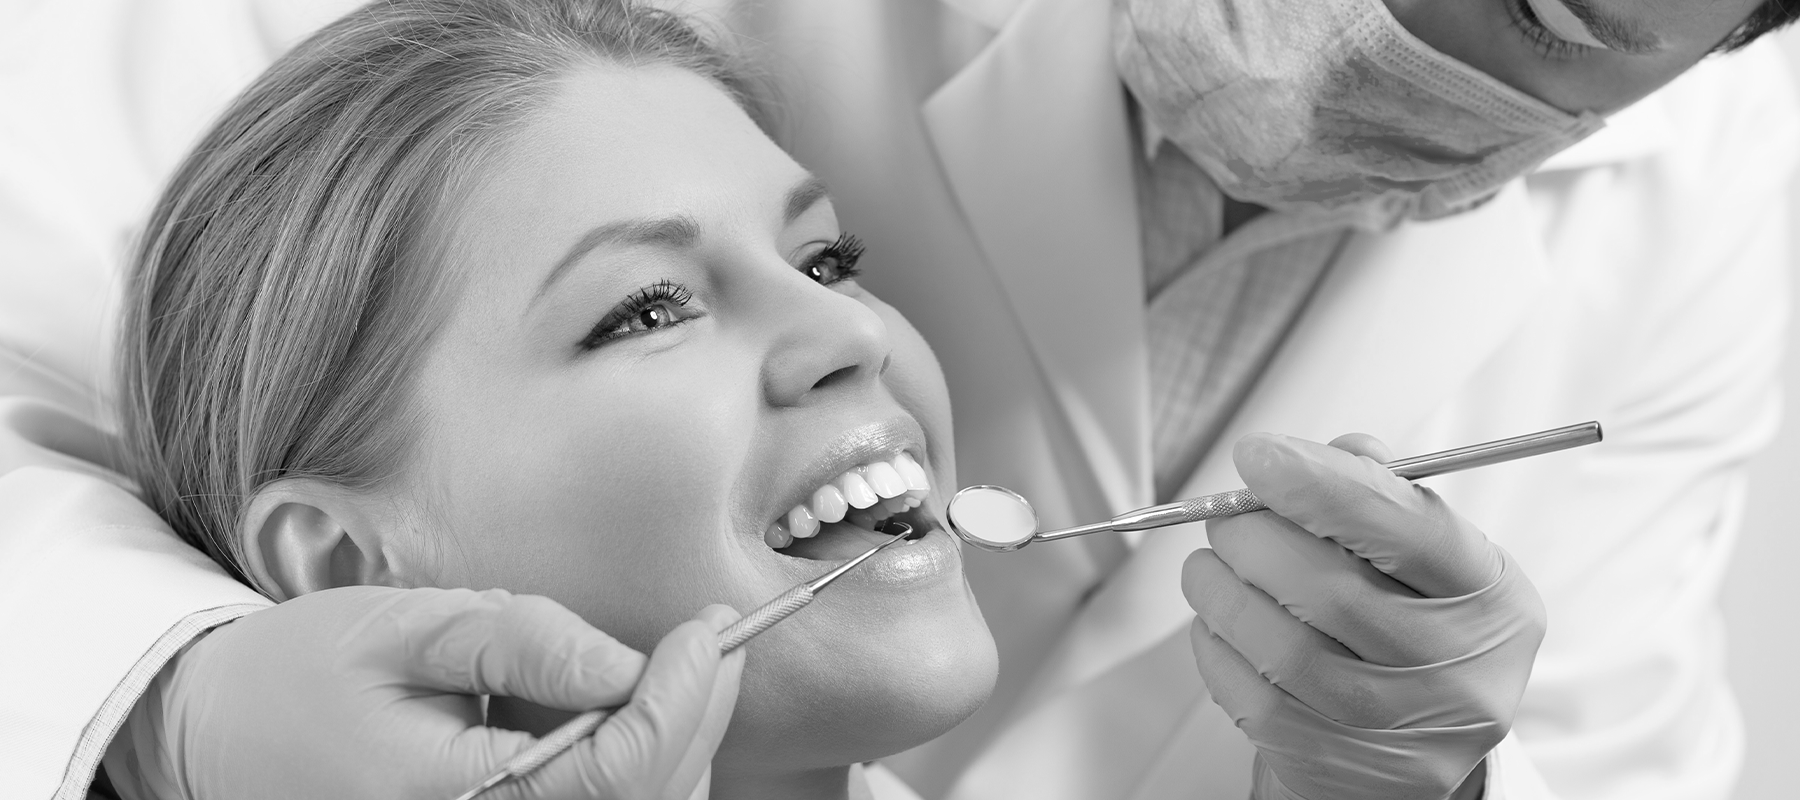 Using dental practice marketing to build your whitening business